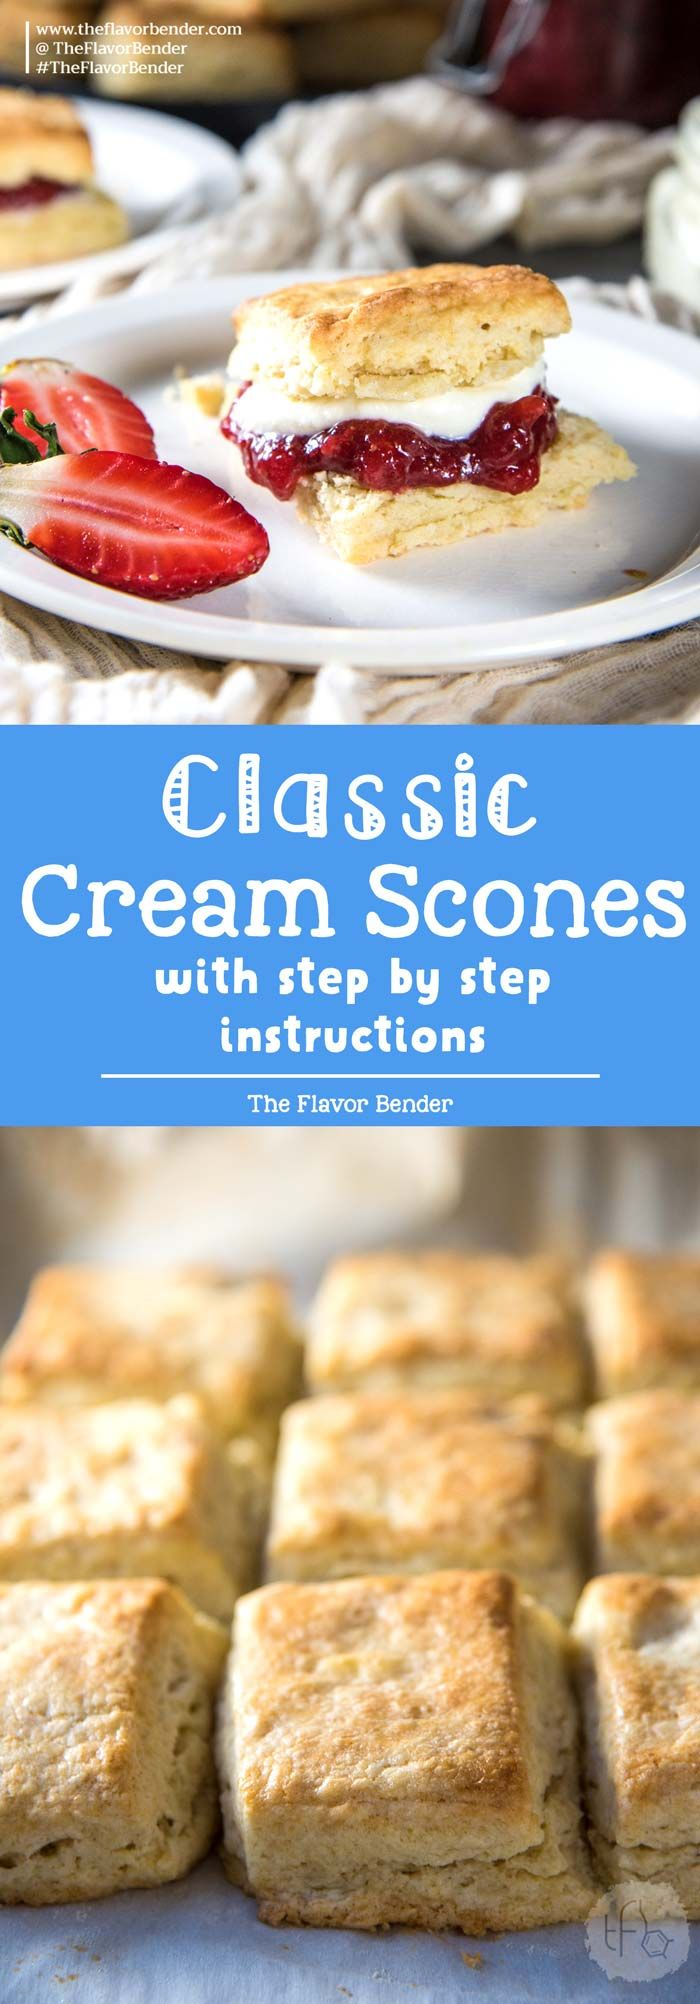 The Best Classic Cream Scones recipe - Step by step recipe with tips on how to make perfect flaky, buttery cream scones, that are so addictive! Easy to make and delicious. via @theflavorbender